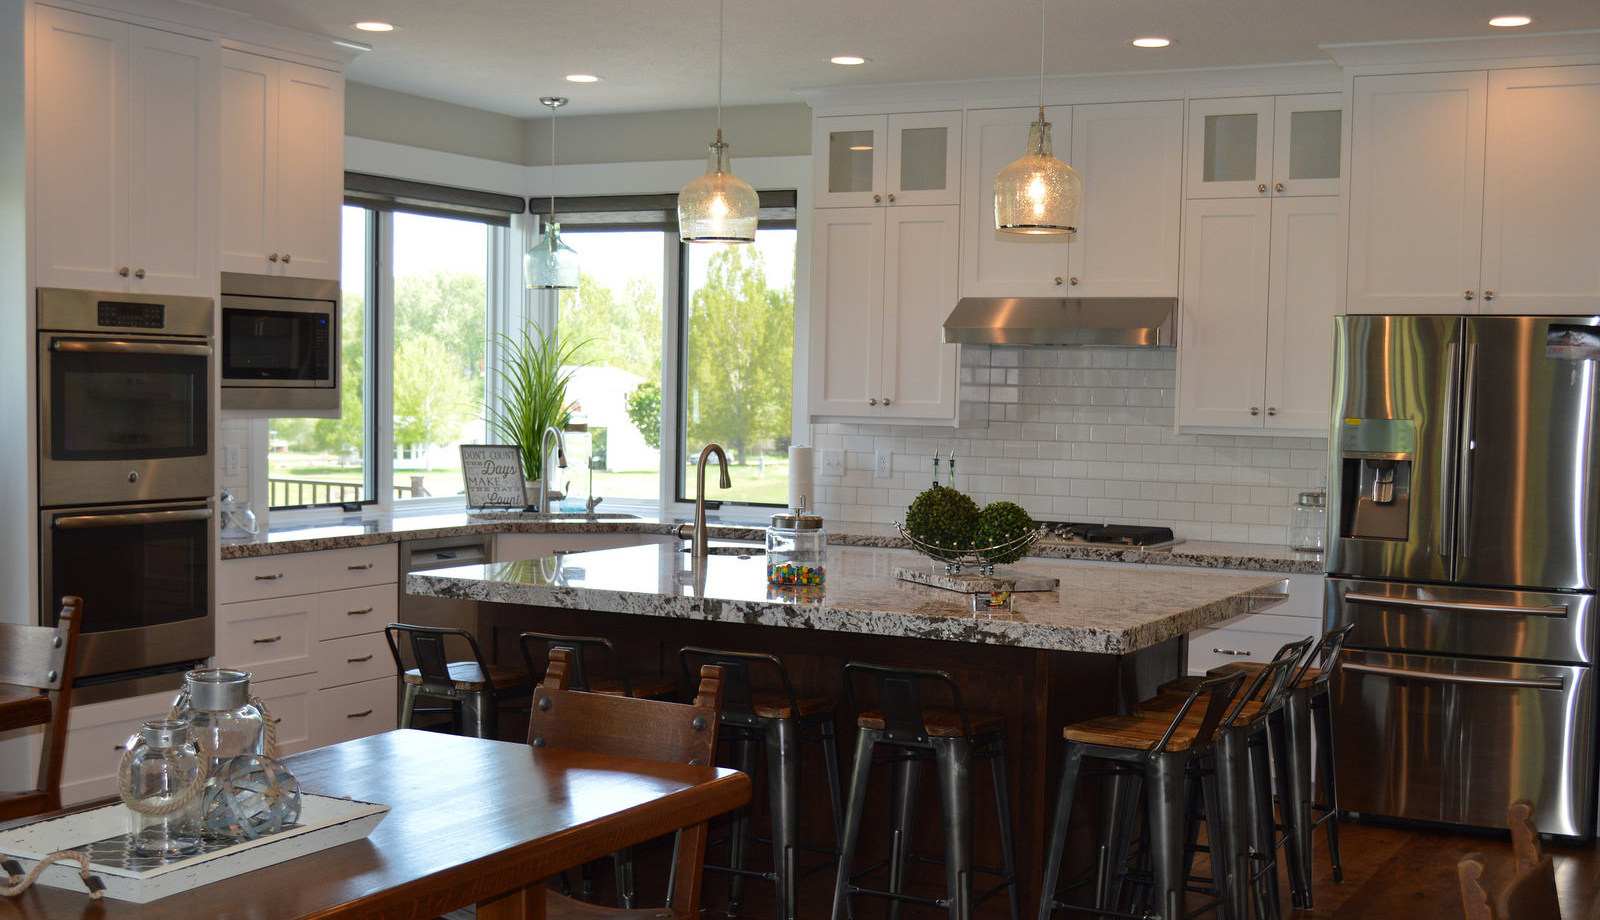 Remarkable Quality Custom Cabinets In Utah By Premier Cabinets Home Interior And Landscaping Oversignezvosmurscom